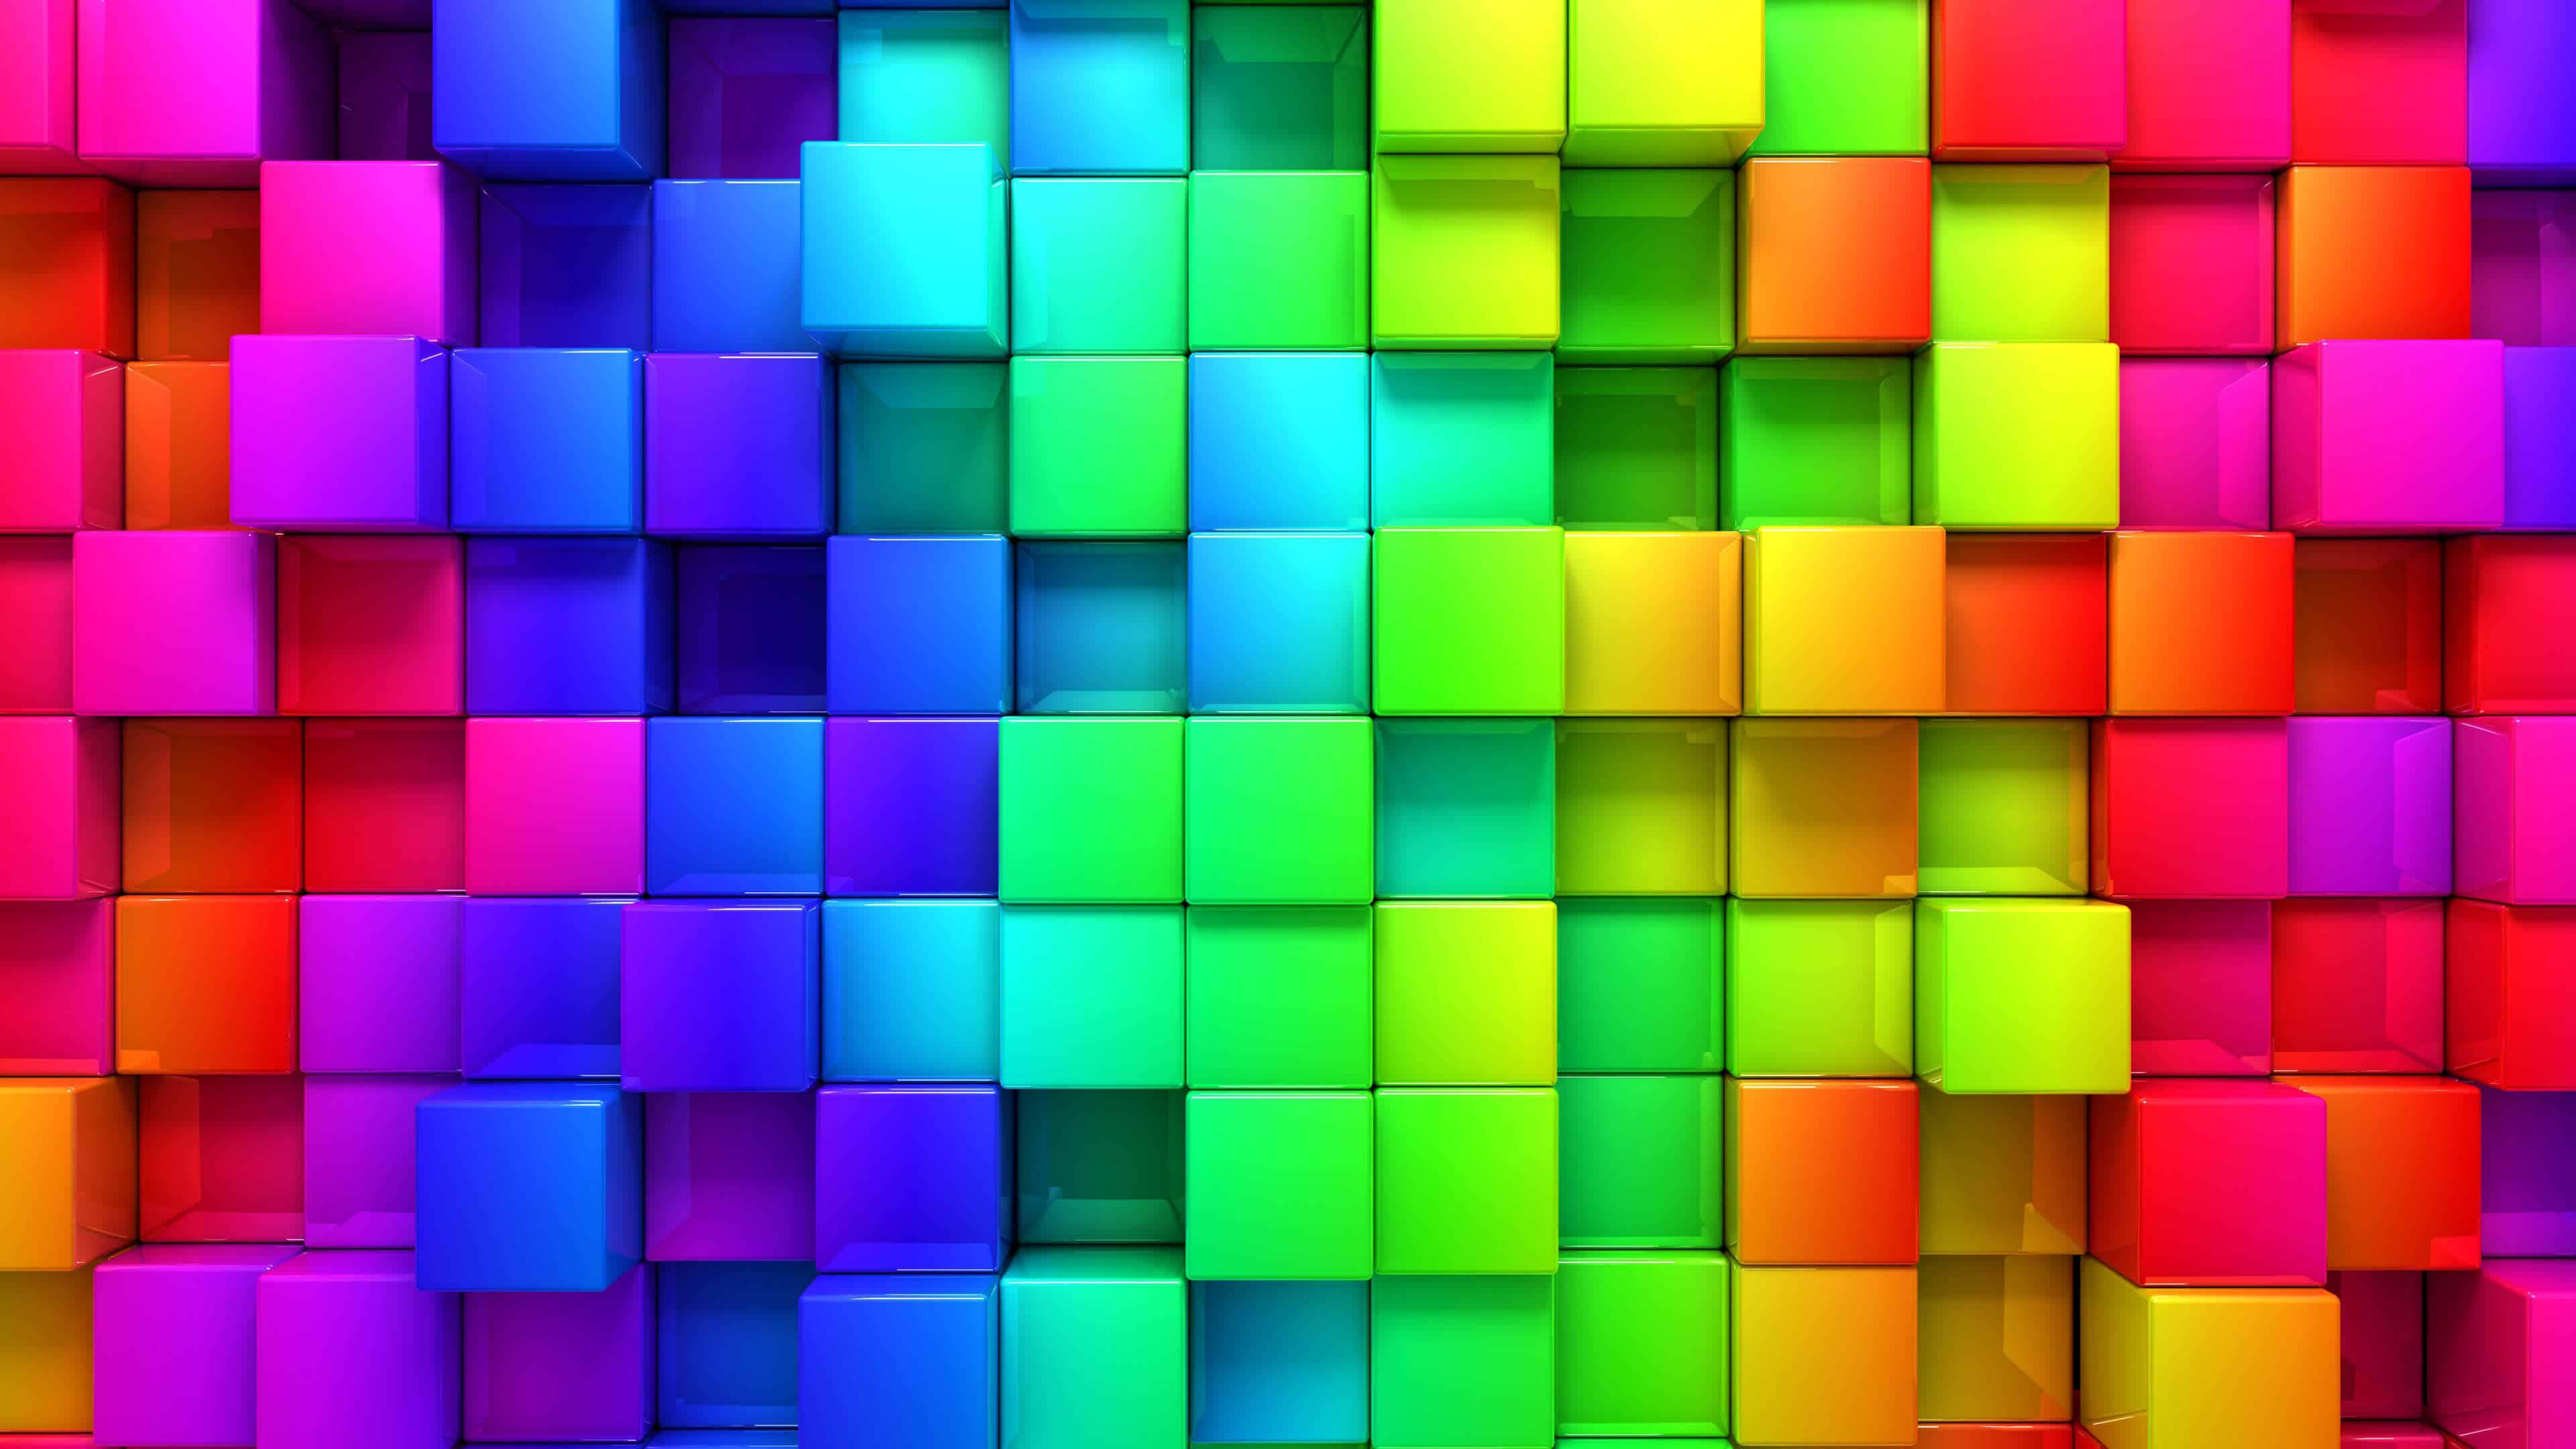 rainbow color palette background uhd 4k wallpaper - Rainbow Color